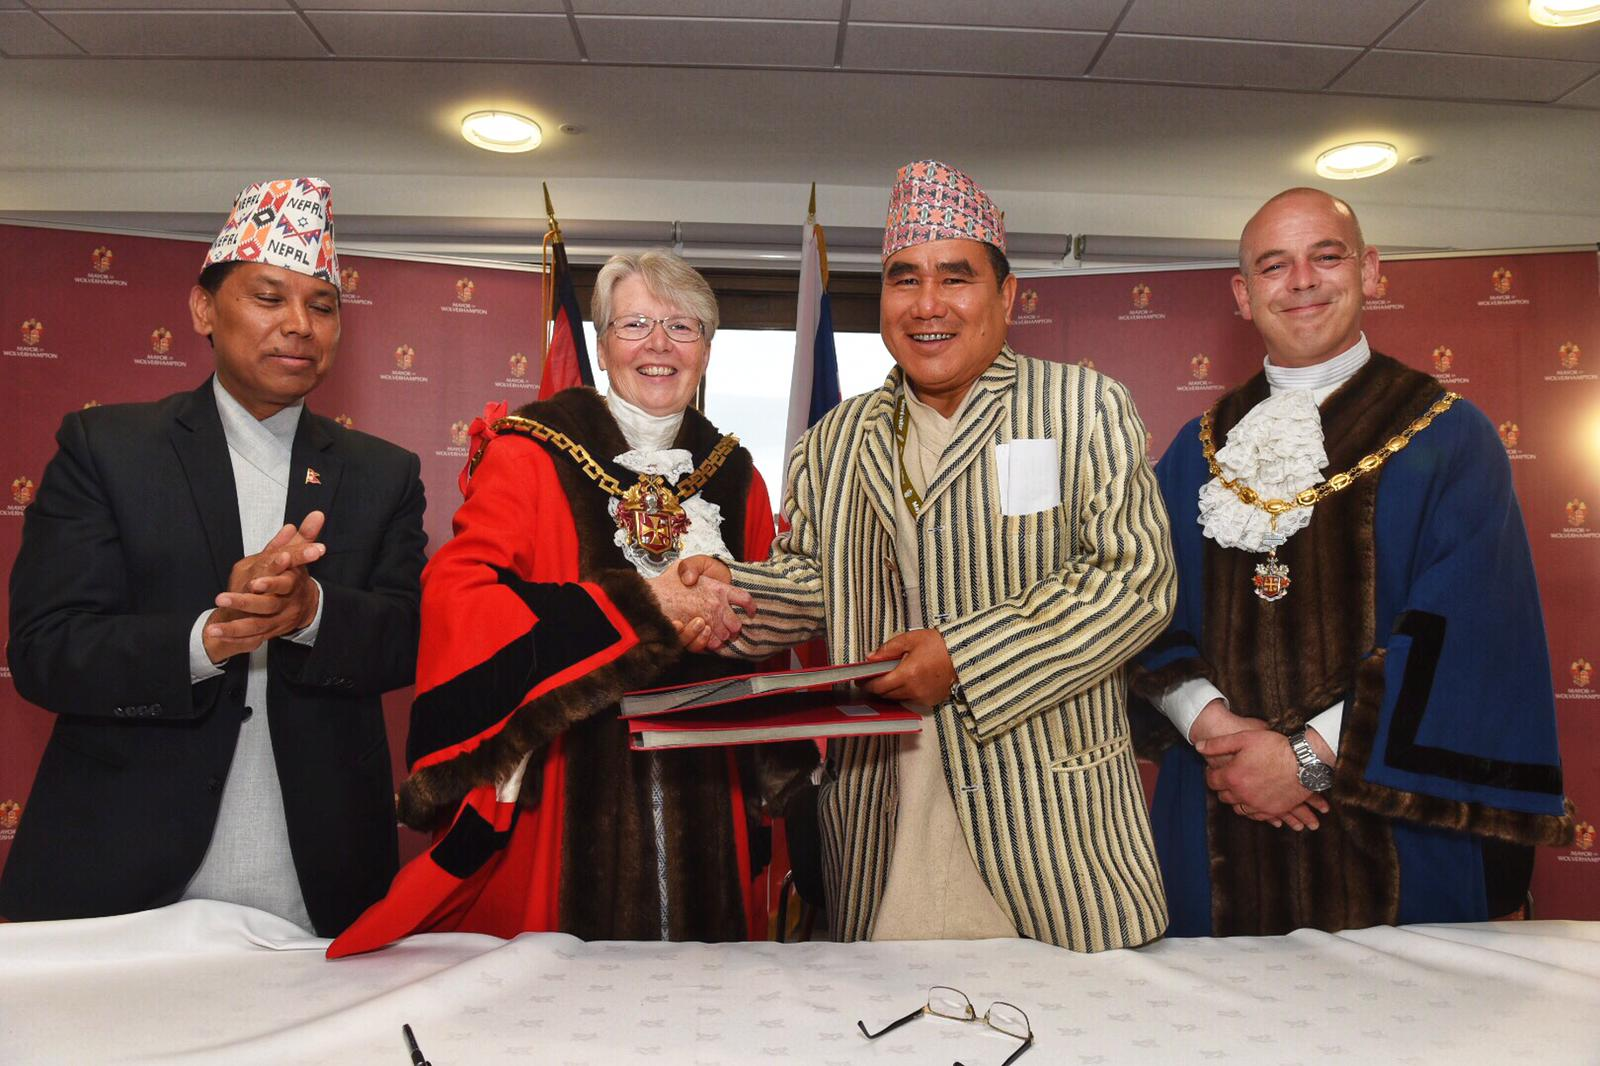 Wolverhampton enters friendship agreement with Nepalese city